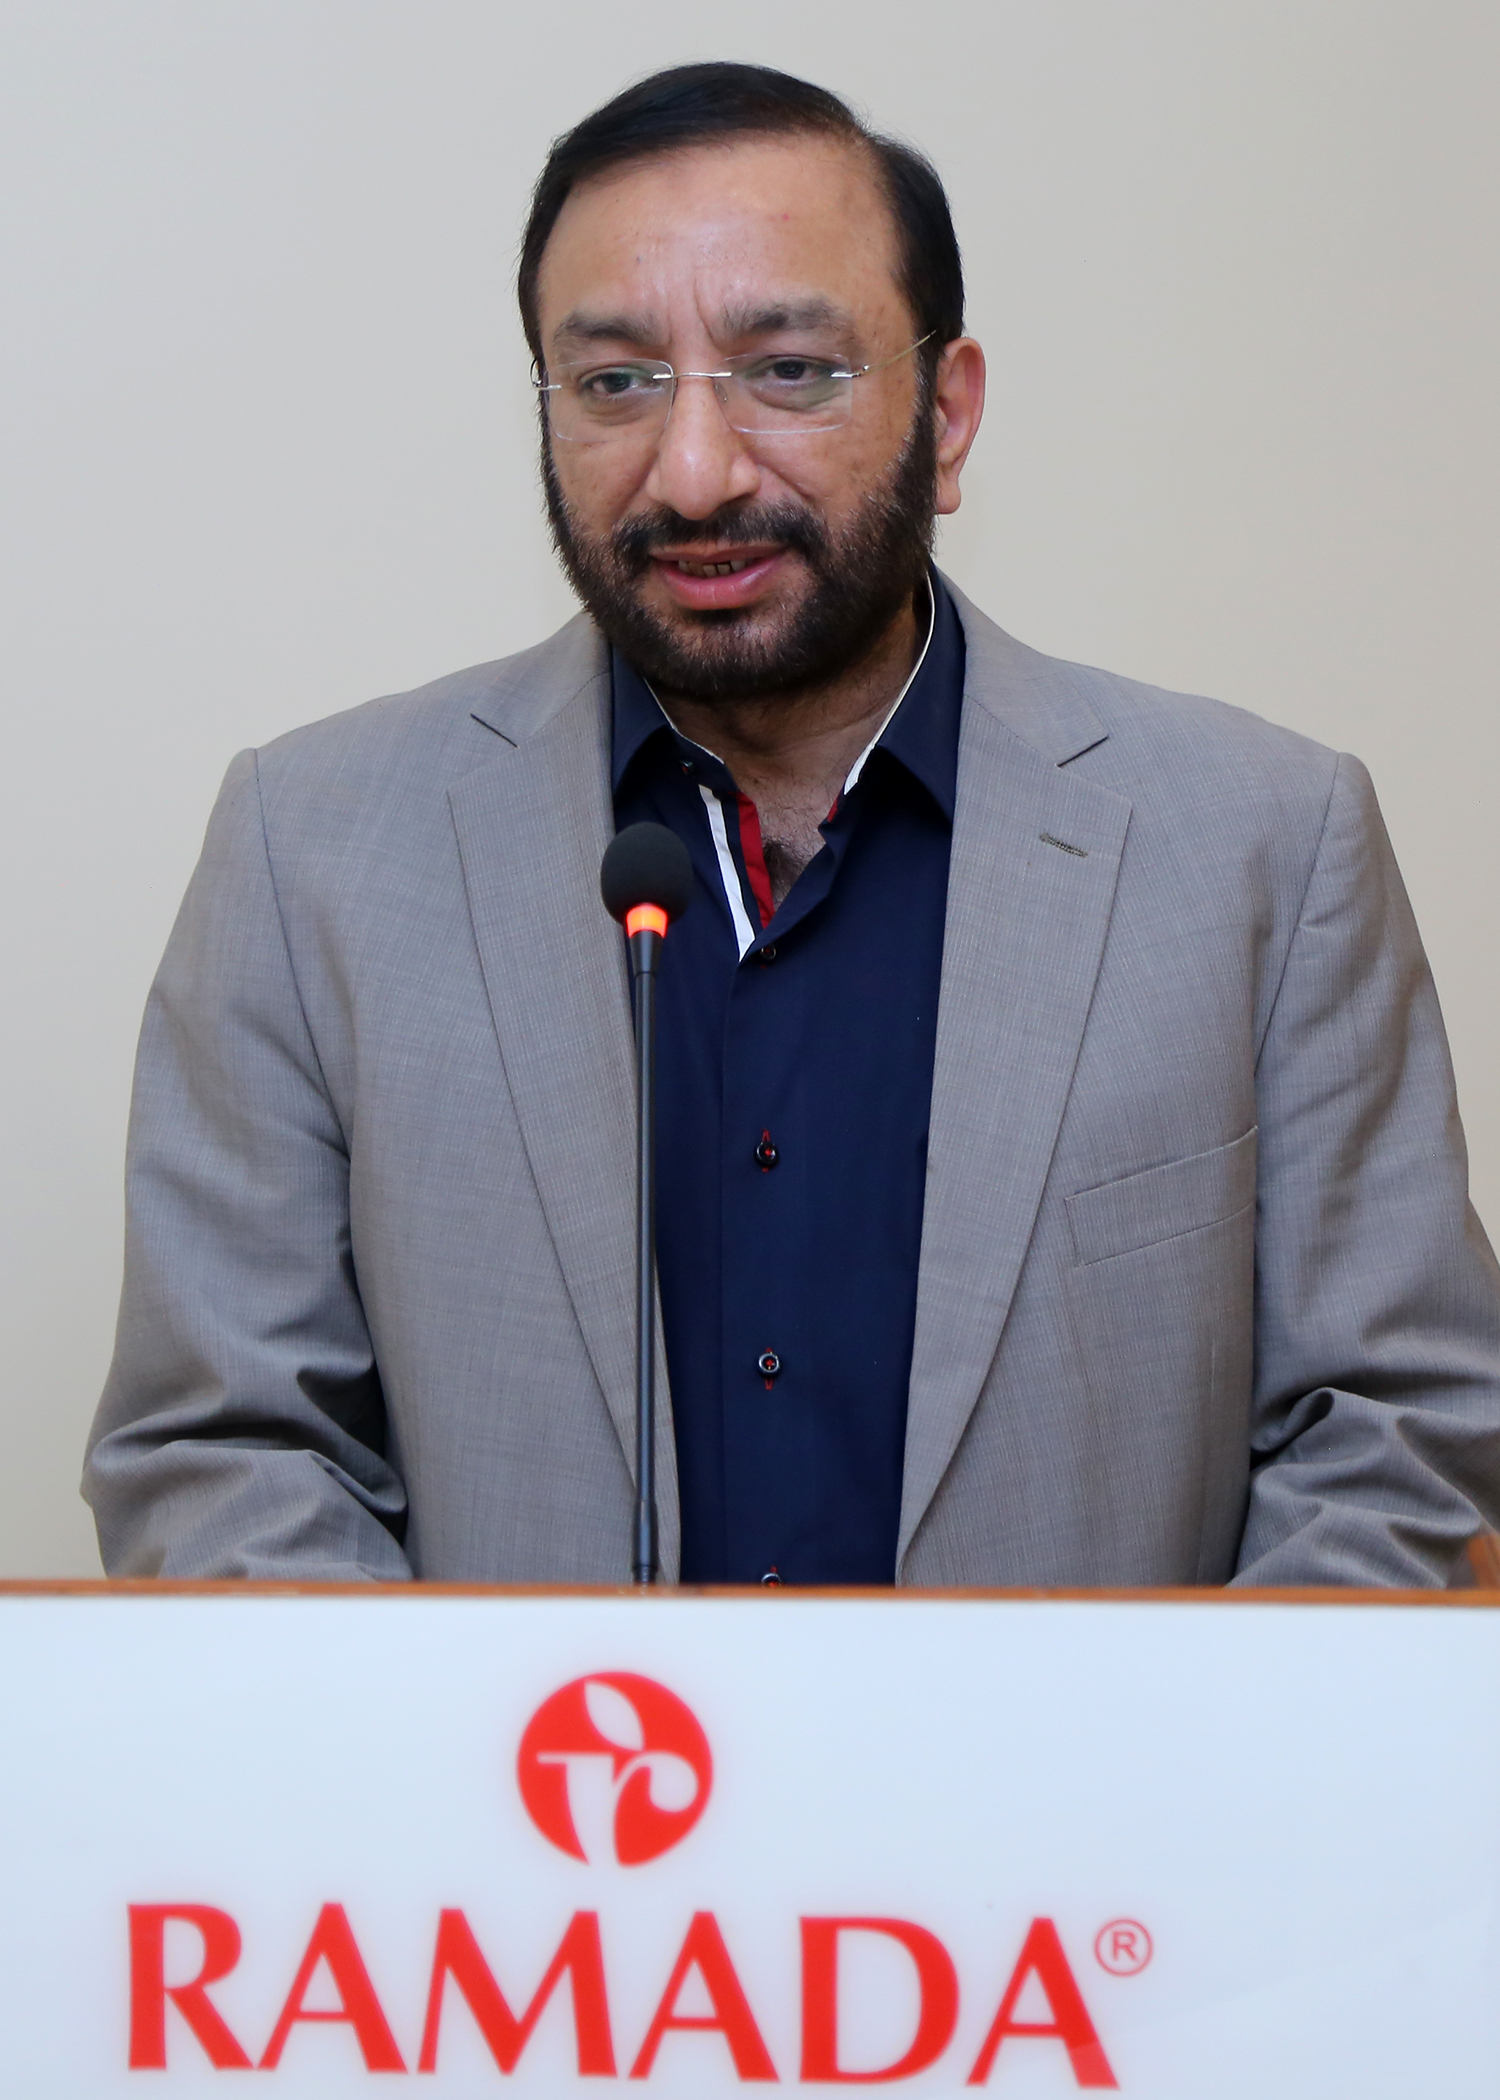 Dr. Rana Altaf, Executive Director, Chaudry Pervaiz Ilahi, Institute of Cardiology